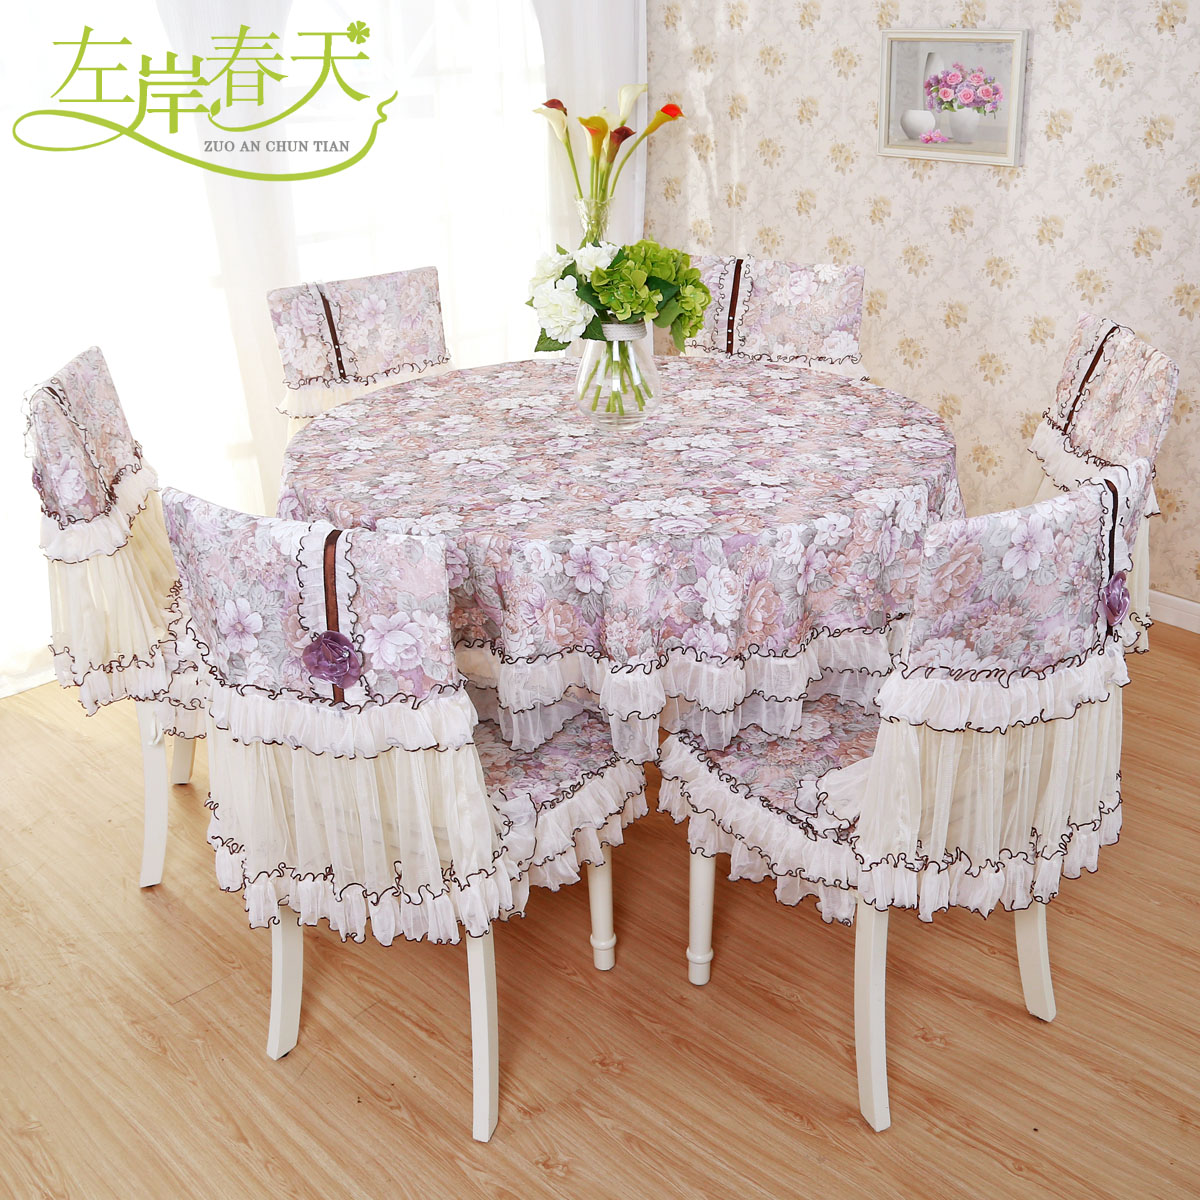 Large Round Table Cloth.Buy Large Round Table Cloth Tablecloth Table Cloth Upholstery